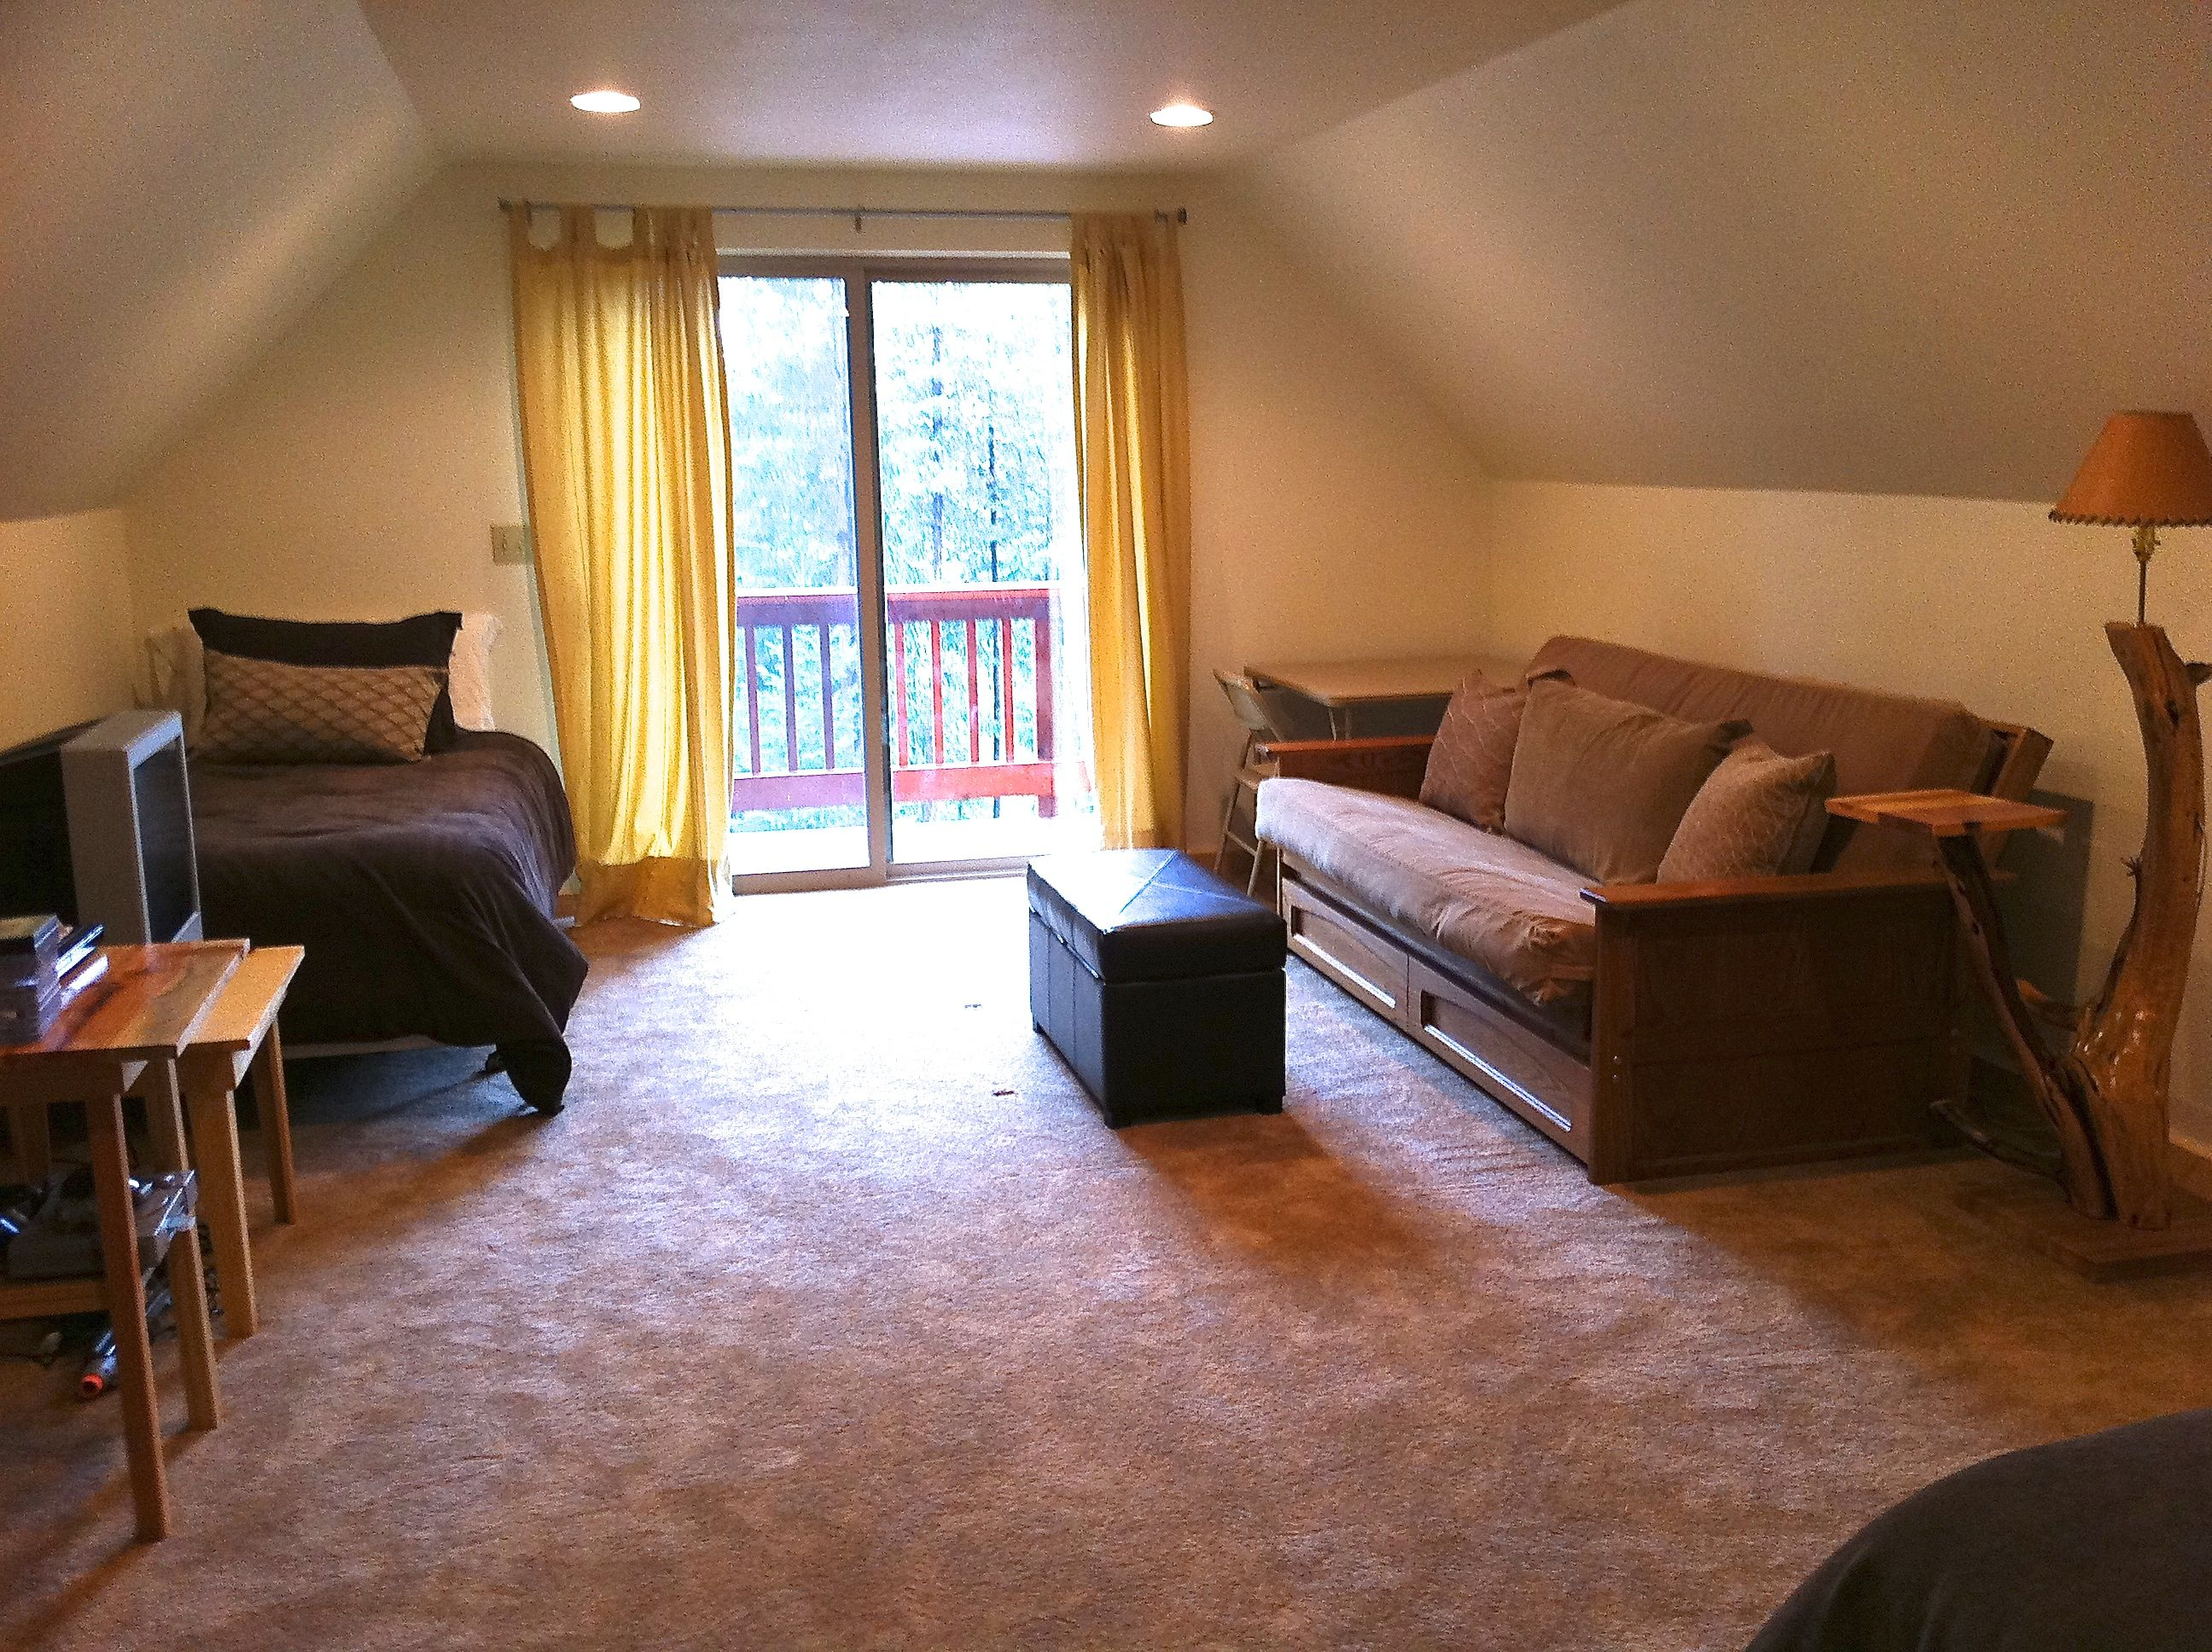 300 sq ft bonus room apt includes a king, twin, and futon dbl bed when flat. Not seen is the king bed, dresser and microwave, TV/DVD and table. Sit out on the deck and enjoy the wilderness setting and visiting birds.